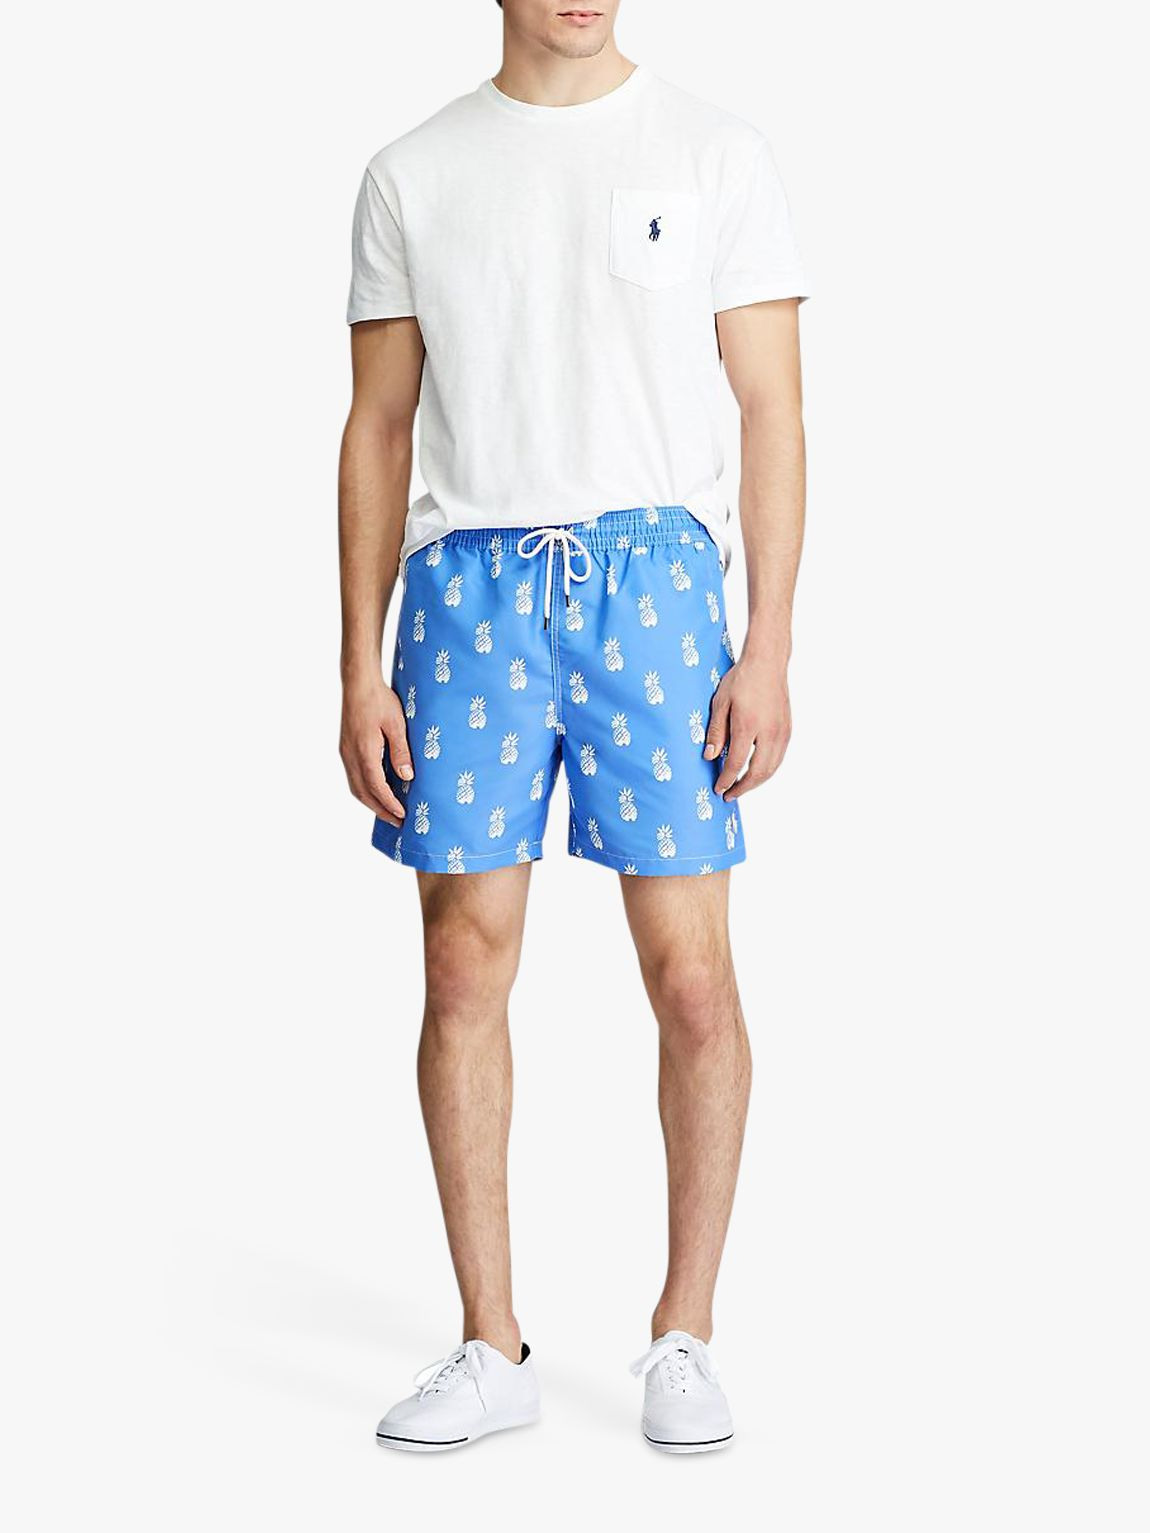 Ralph Lauren Polo Ralph Lauren Traveller Pineapple Print Swim Shorts, Bathsheba